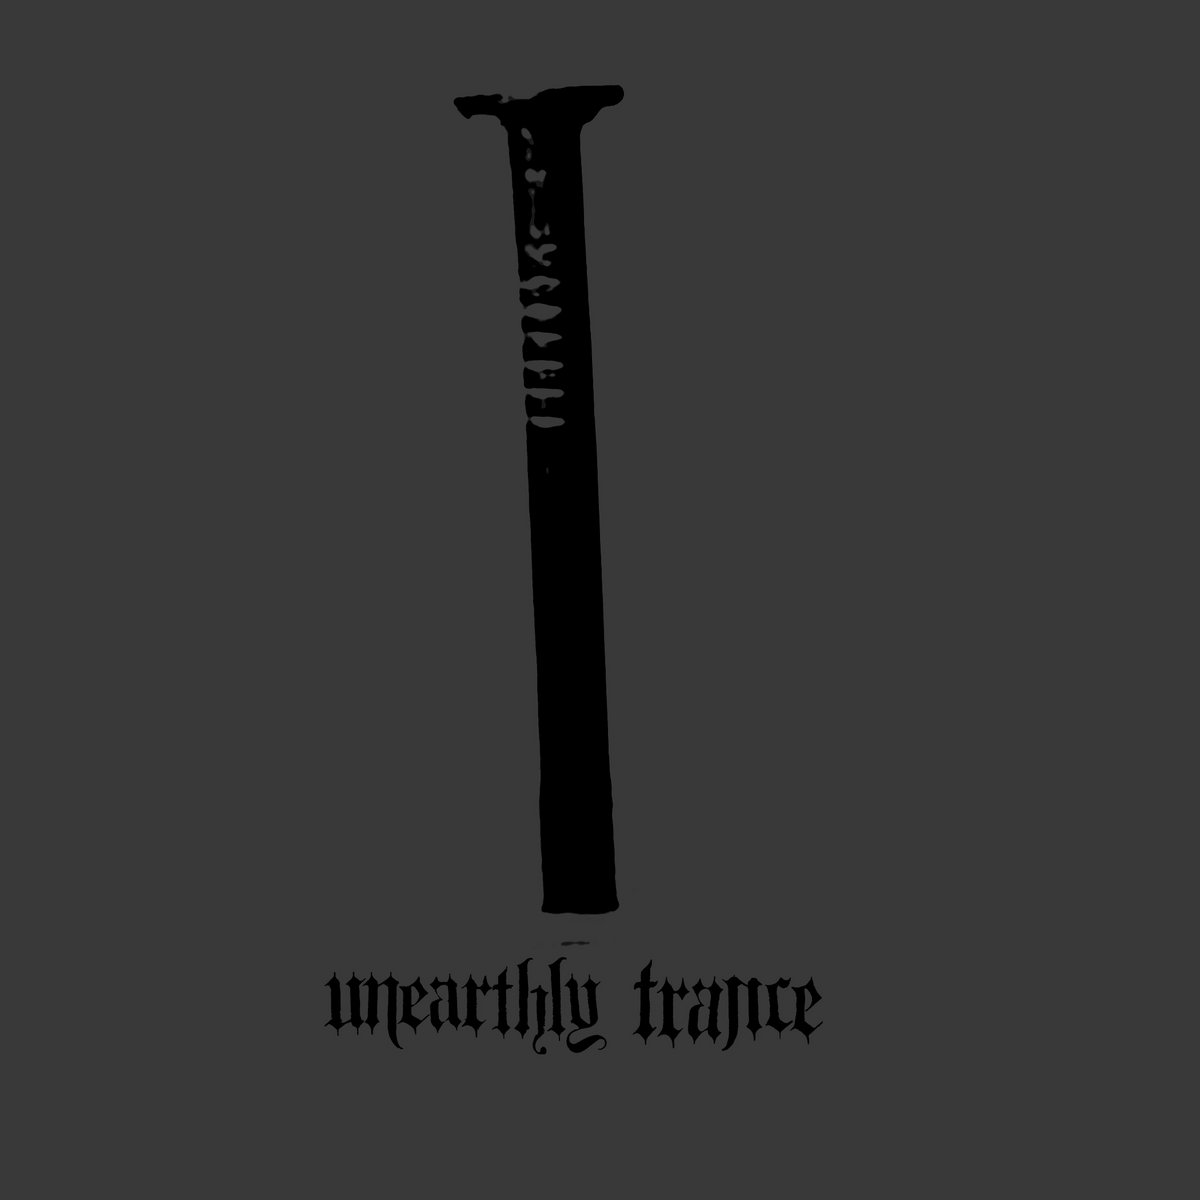 The Nail That Sticks Up Gets Hammered Down | Unearthly Trance